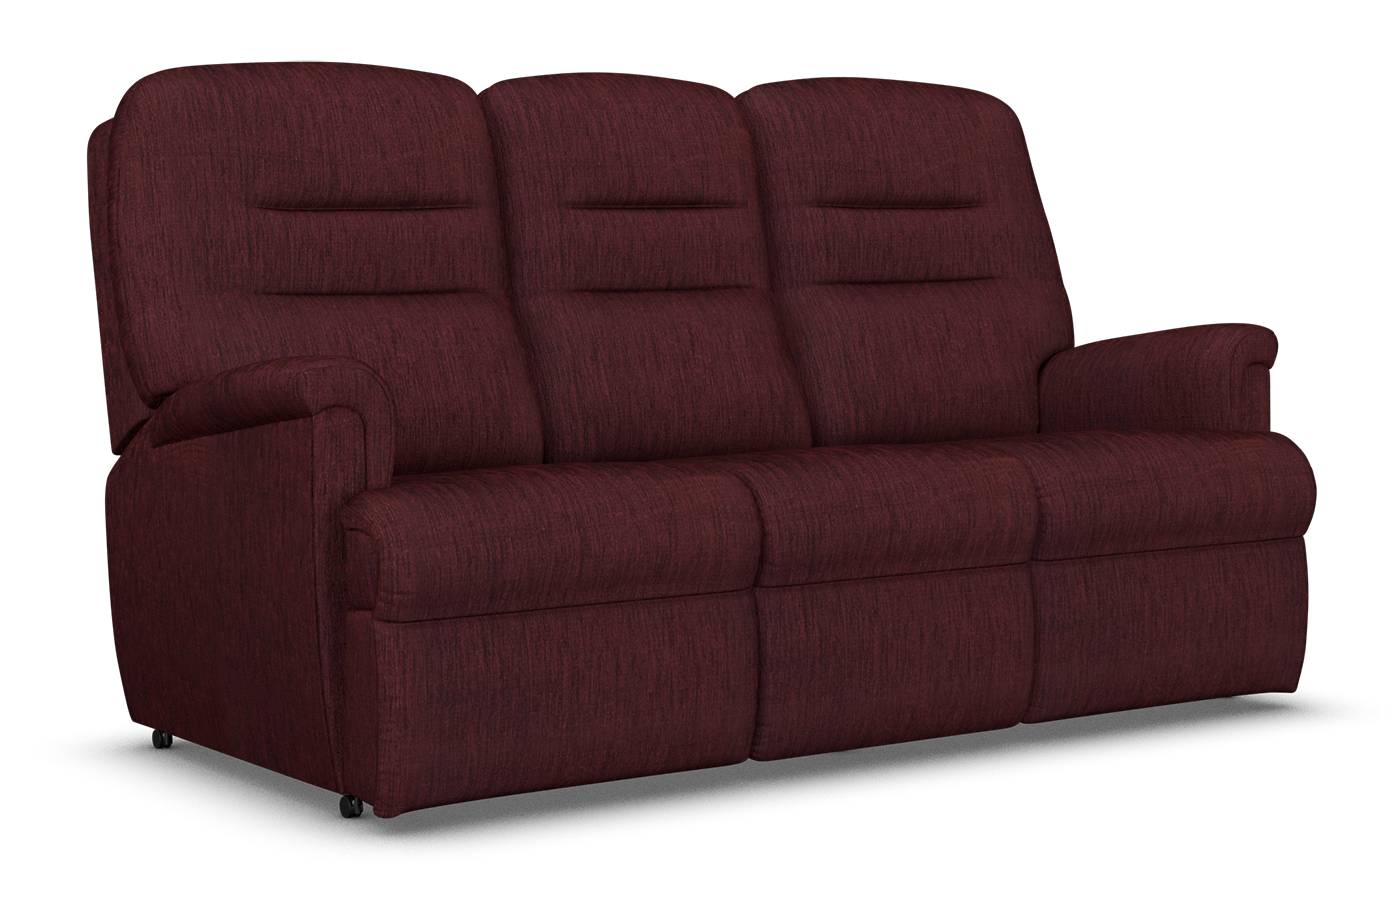 Penrith 3 Seater Powered Recliner Sofa Available In